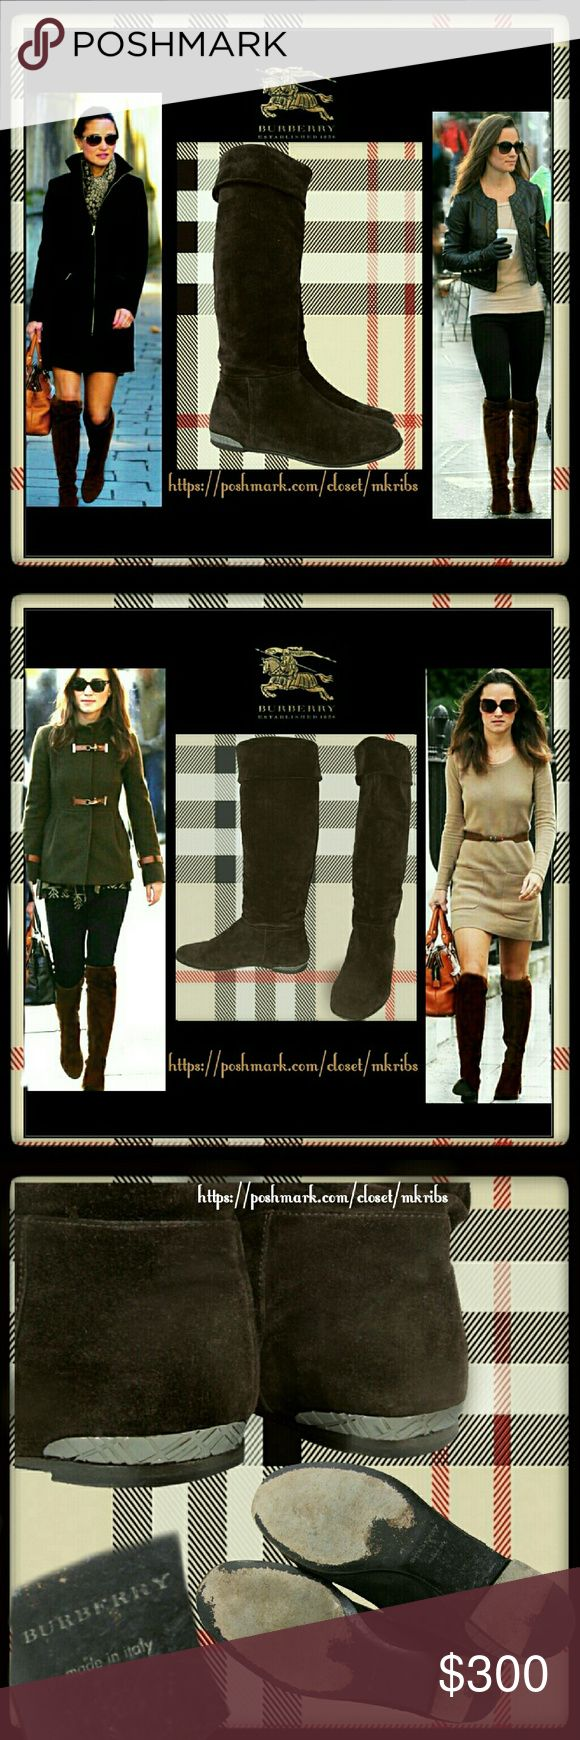 ❤ Burberry knee high brown boots size 6.5 Intelligent indulgence with these Burberry knee high chocolate brown flat suede boots. Pipa shows how you can wear anywhere with anything. Lightly worn with light fading of the suede near the back bottom heel and on bottom soles as shown. Otherwise,beautiful condition.  Eu size 36.5 No box. NO TRADES PLEASE! REASONABLE OFFERS WELCOME THROUGH OFFER FEATURE ONLY PLEASE! Burberry Shoes